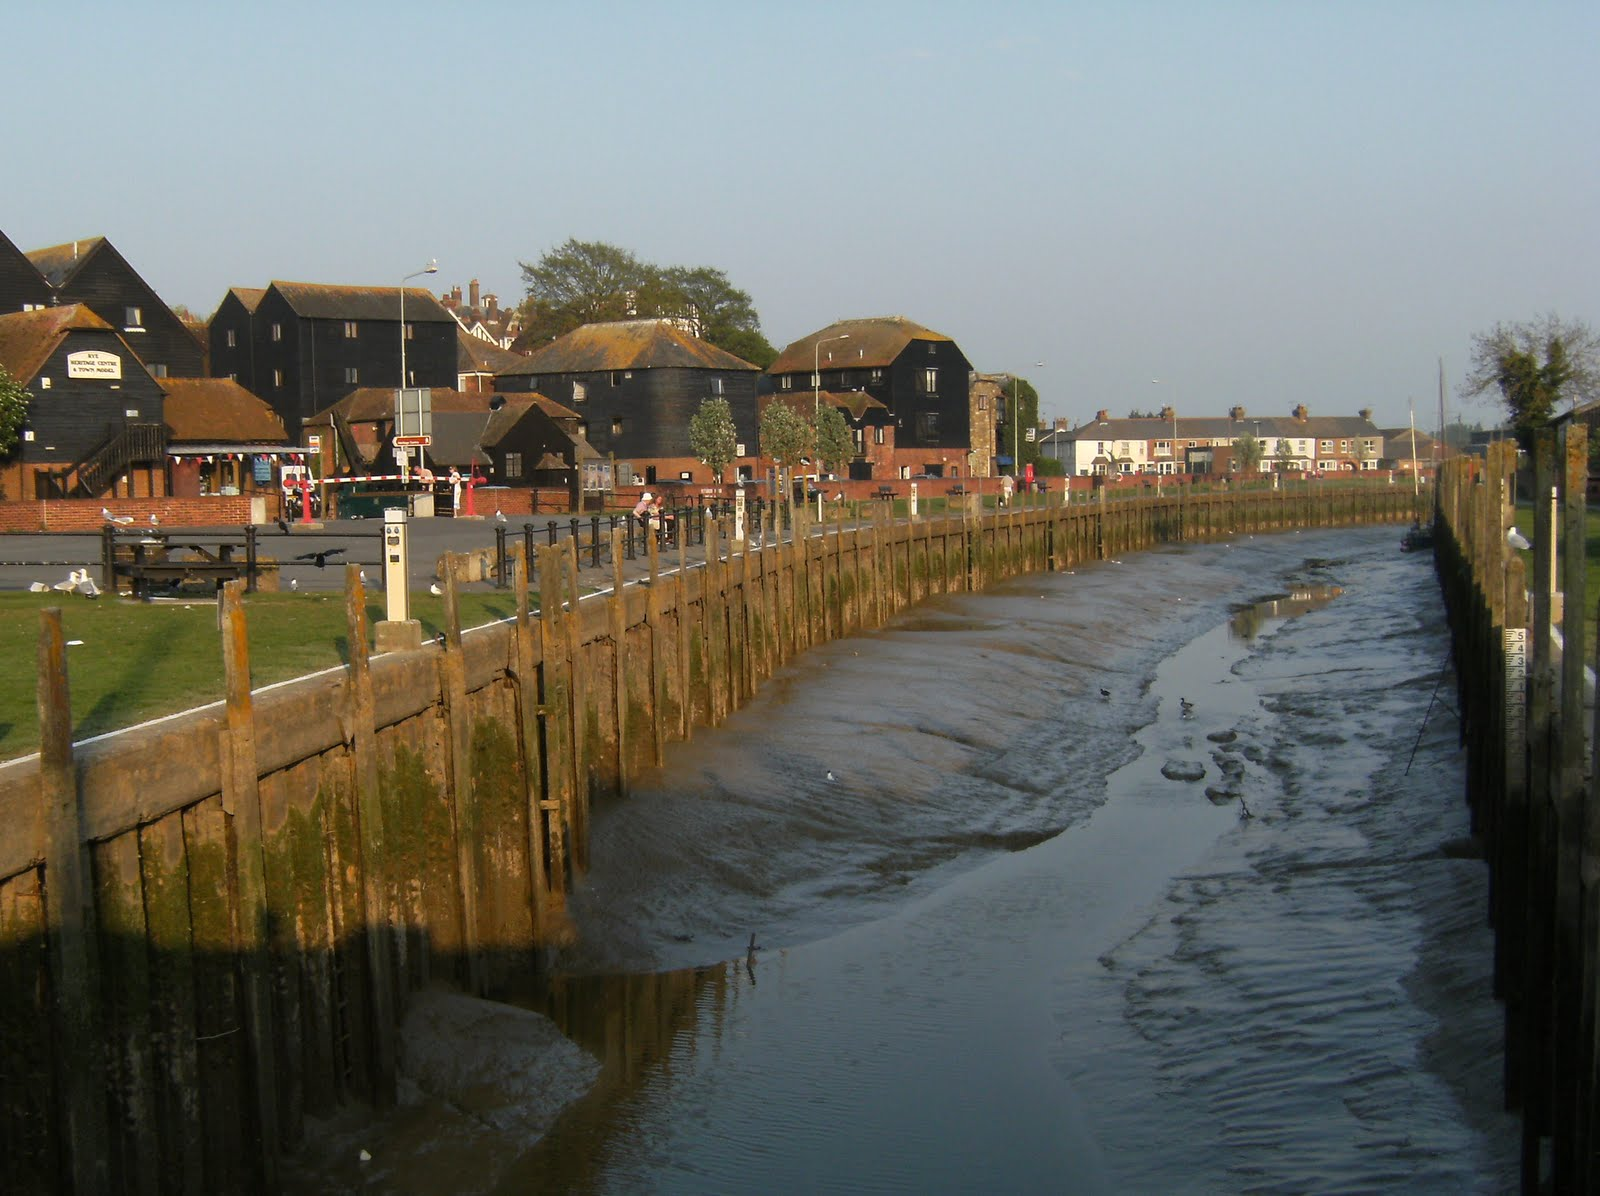 DSCF7411 Strand Quay at low tide, Rye